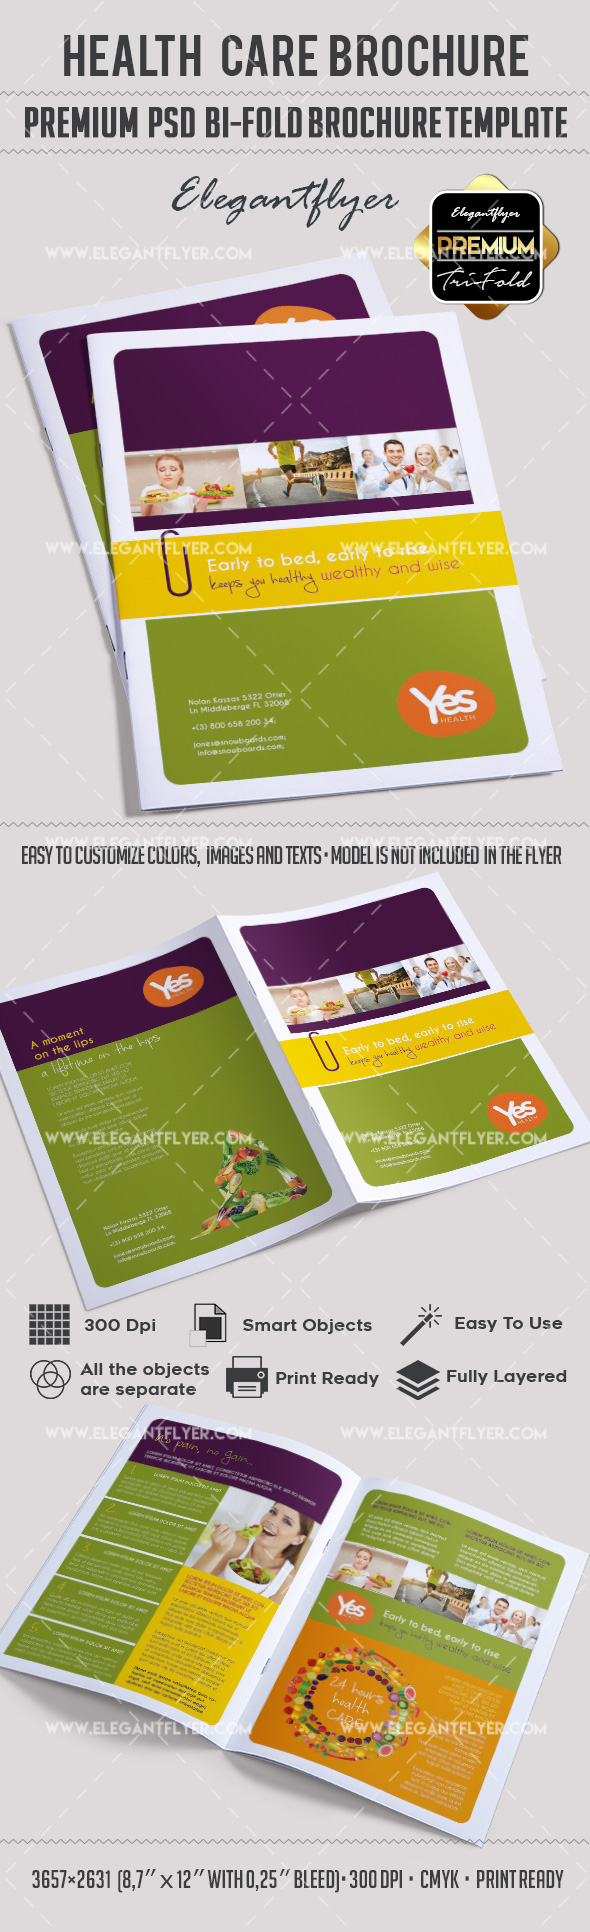 Health Care – Premium Bi-Fold PSD Brochure Template